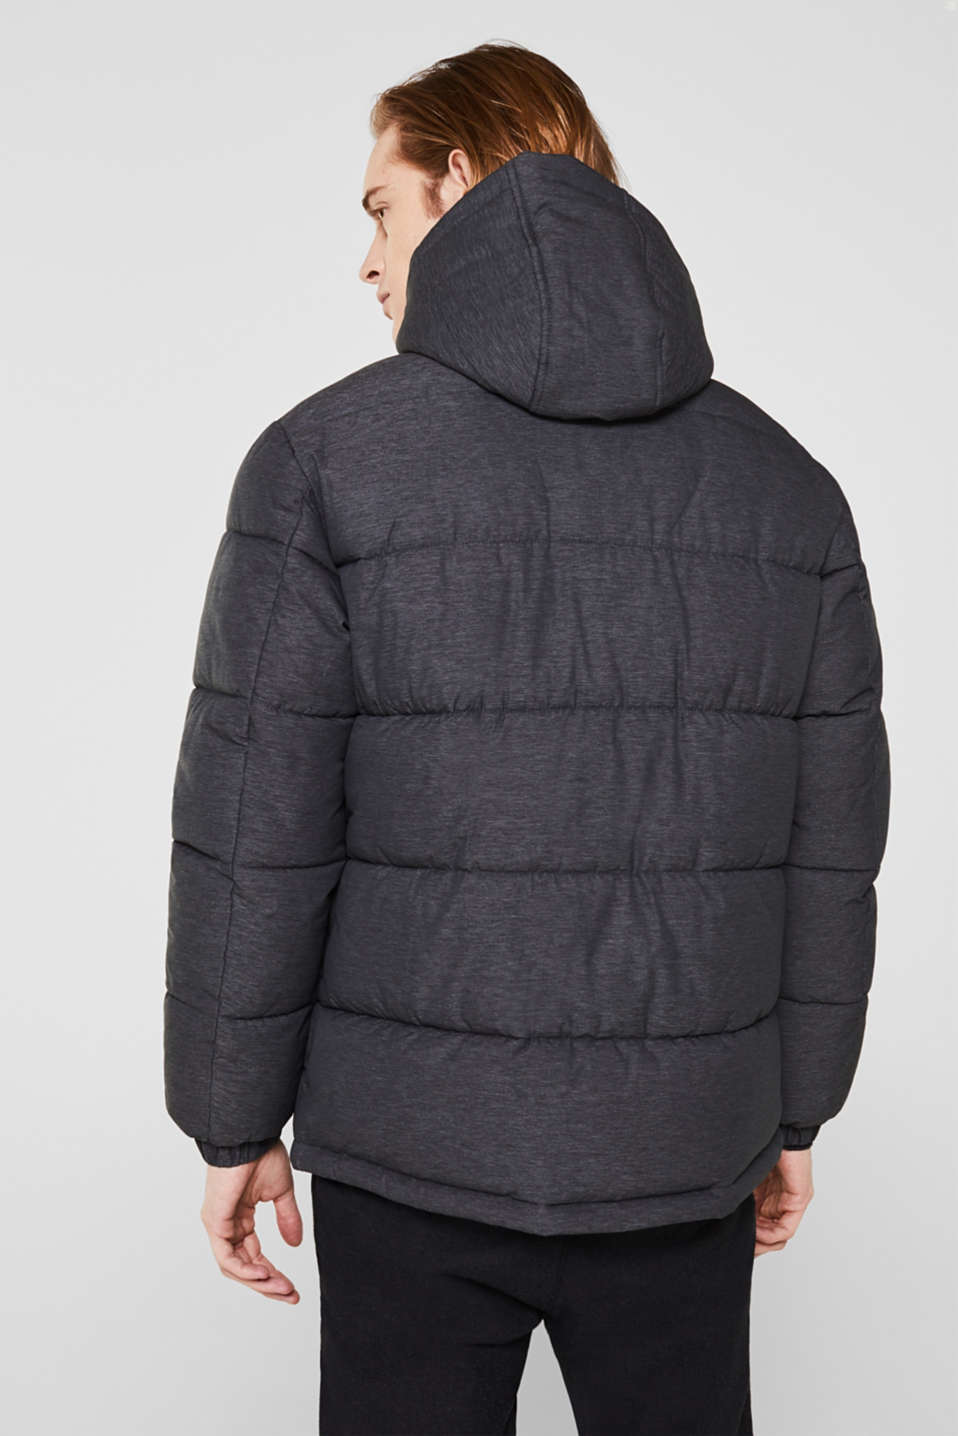 Quilted jacket with an adjustable hood, DARK GREY, detail image number 3